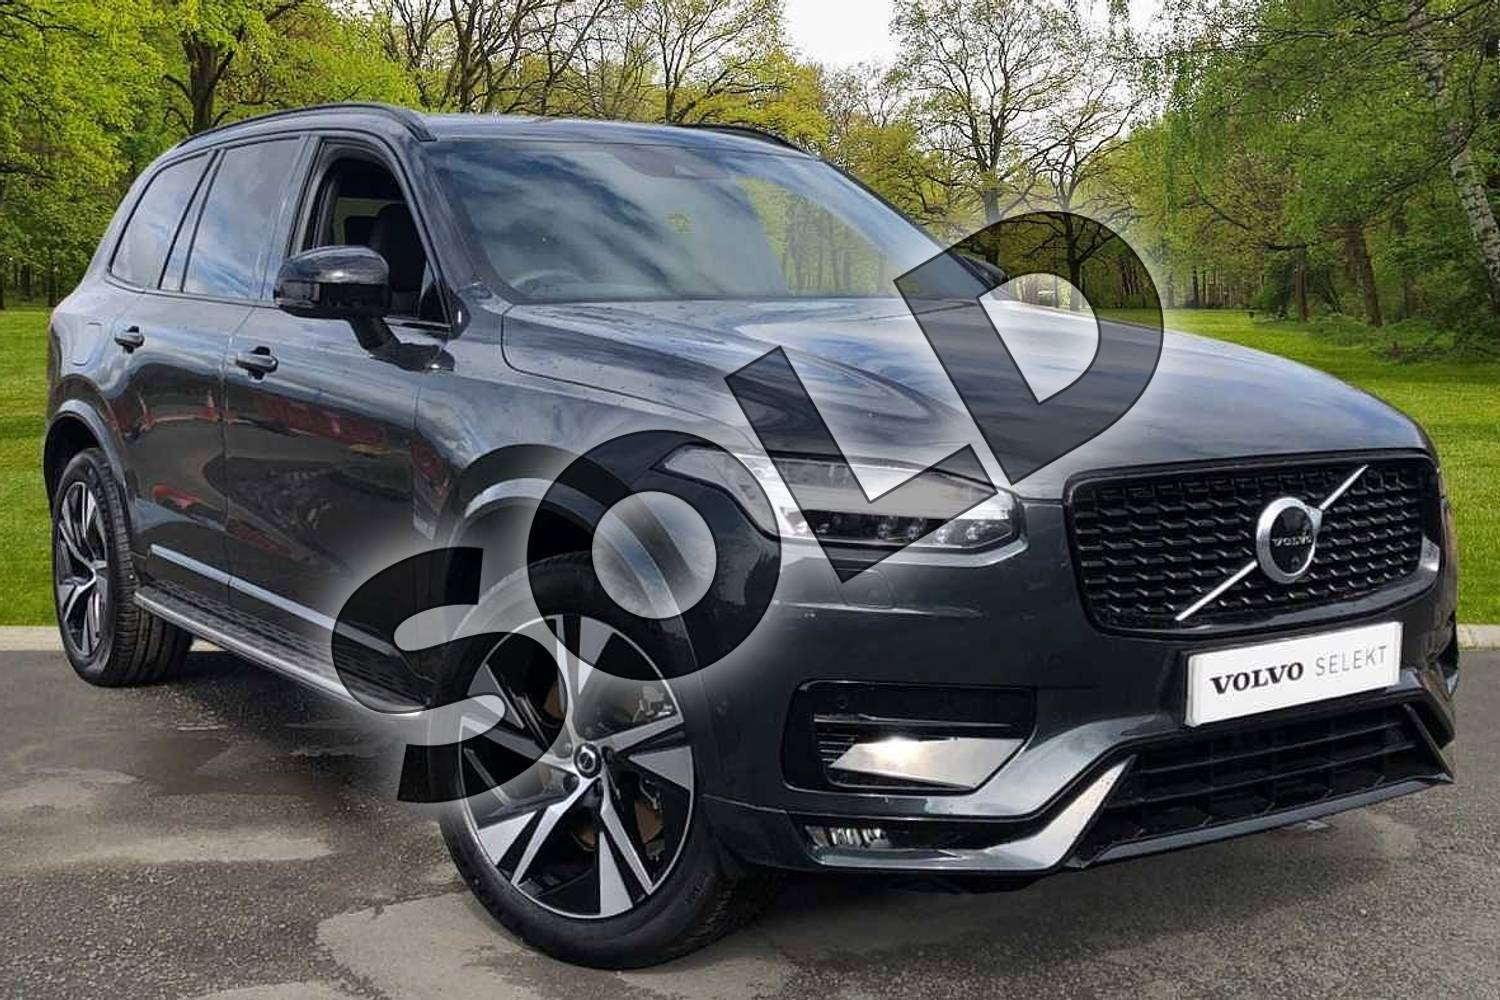 2021 Volvo XC90 Estate 2.0 B5P (250) R DESIGN 5dr AWD Gtron in Savile Grey at Listers Volvo Worcester